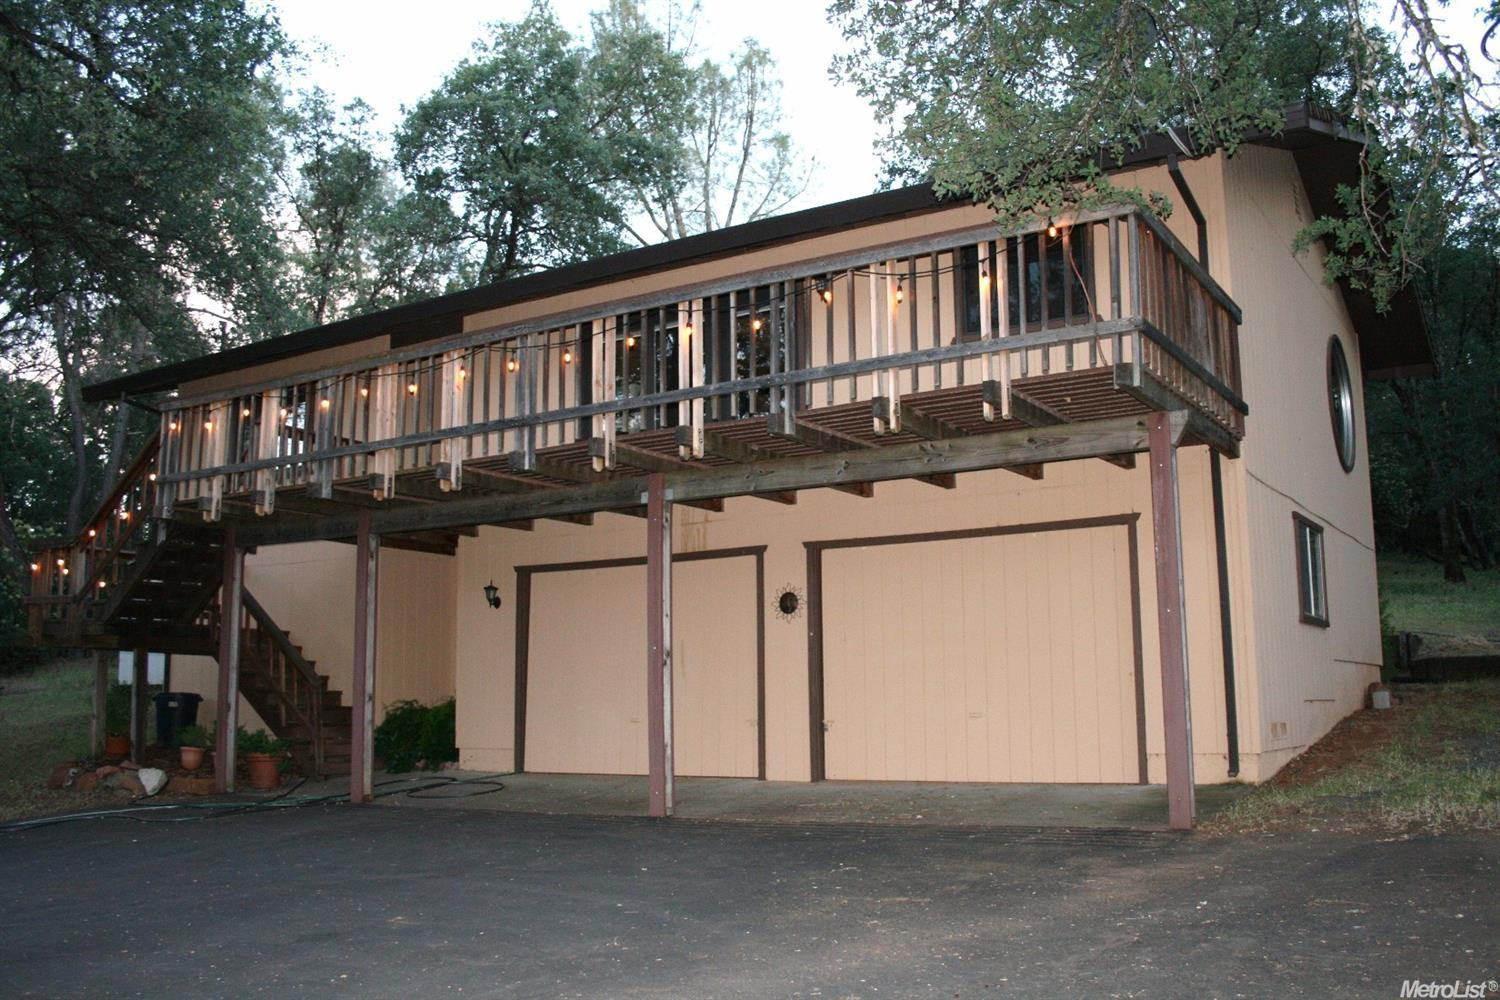 shingle springs dating site Make your tent camping site reservation at placerville koa located in shingle springs, california.